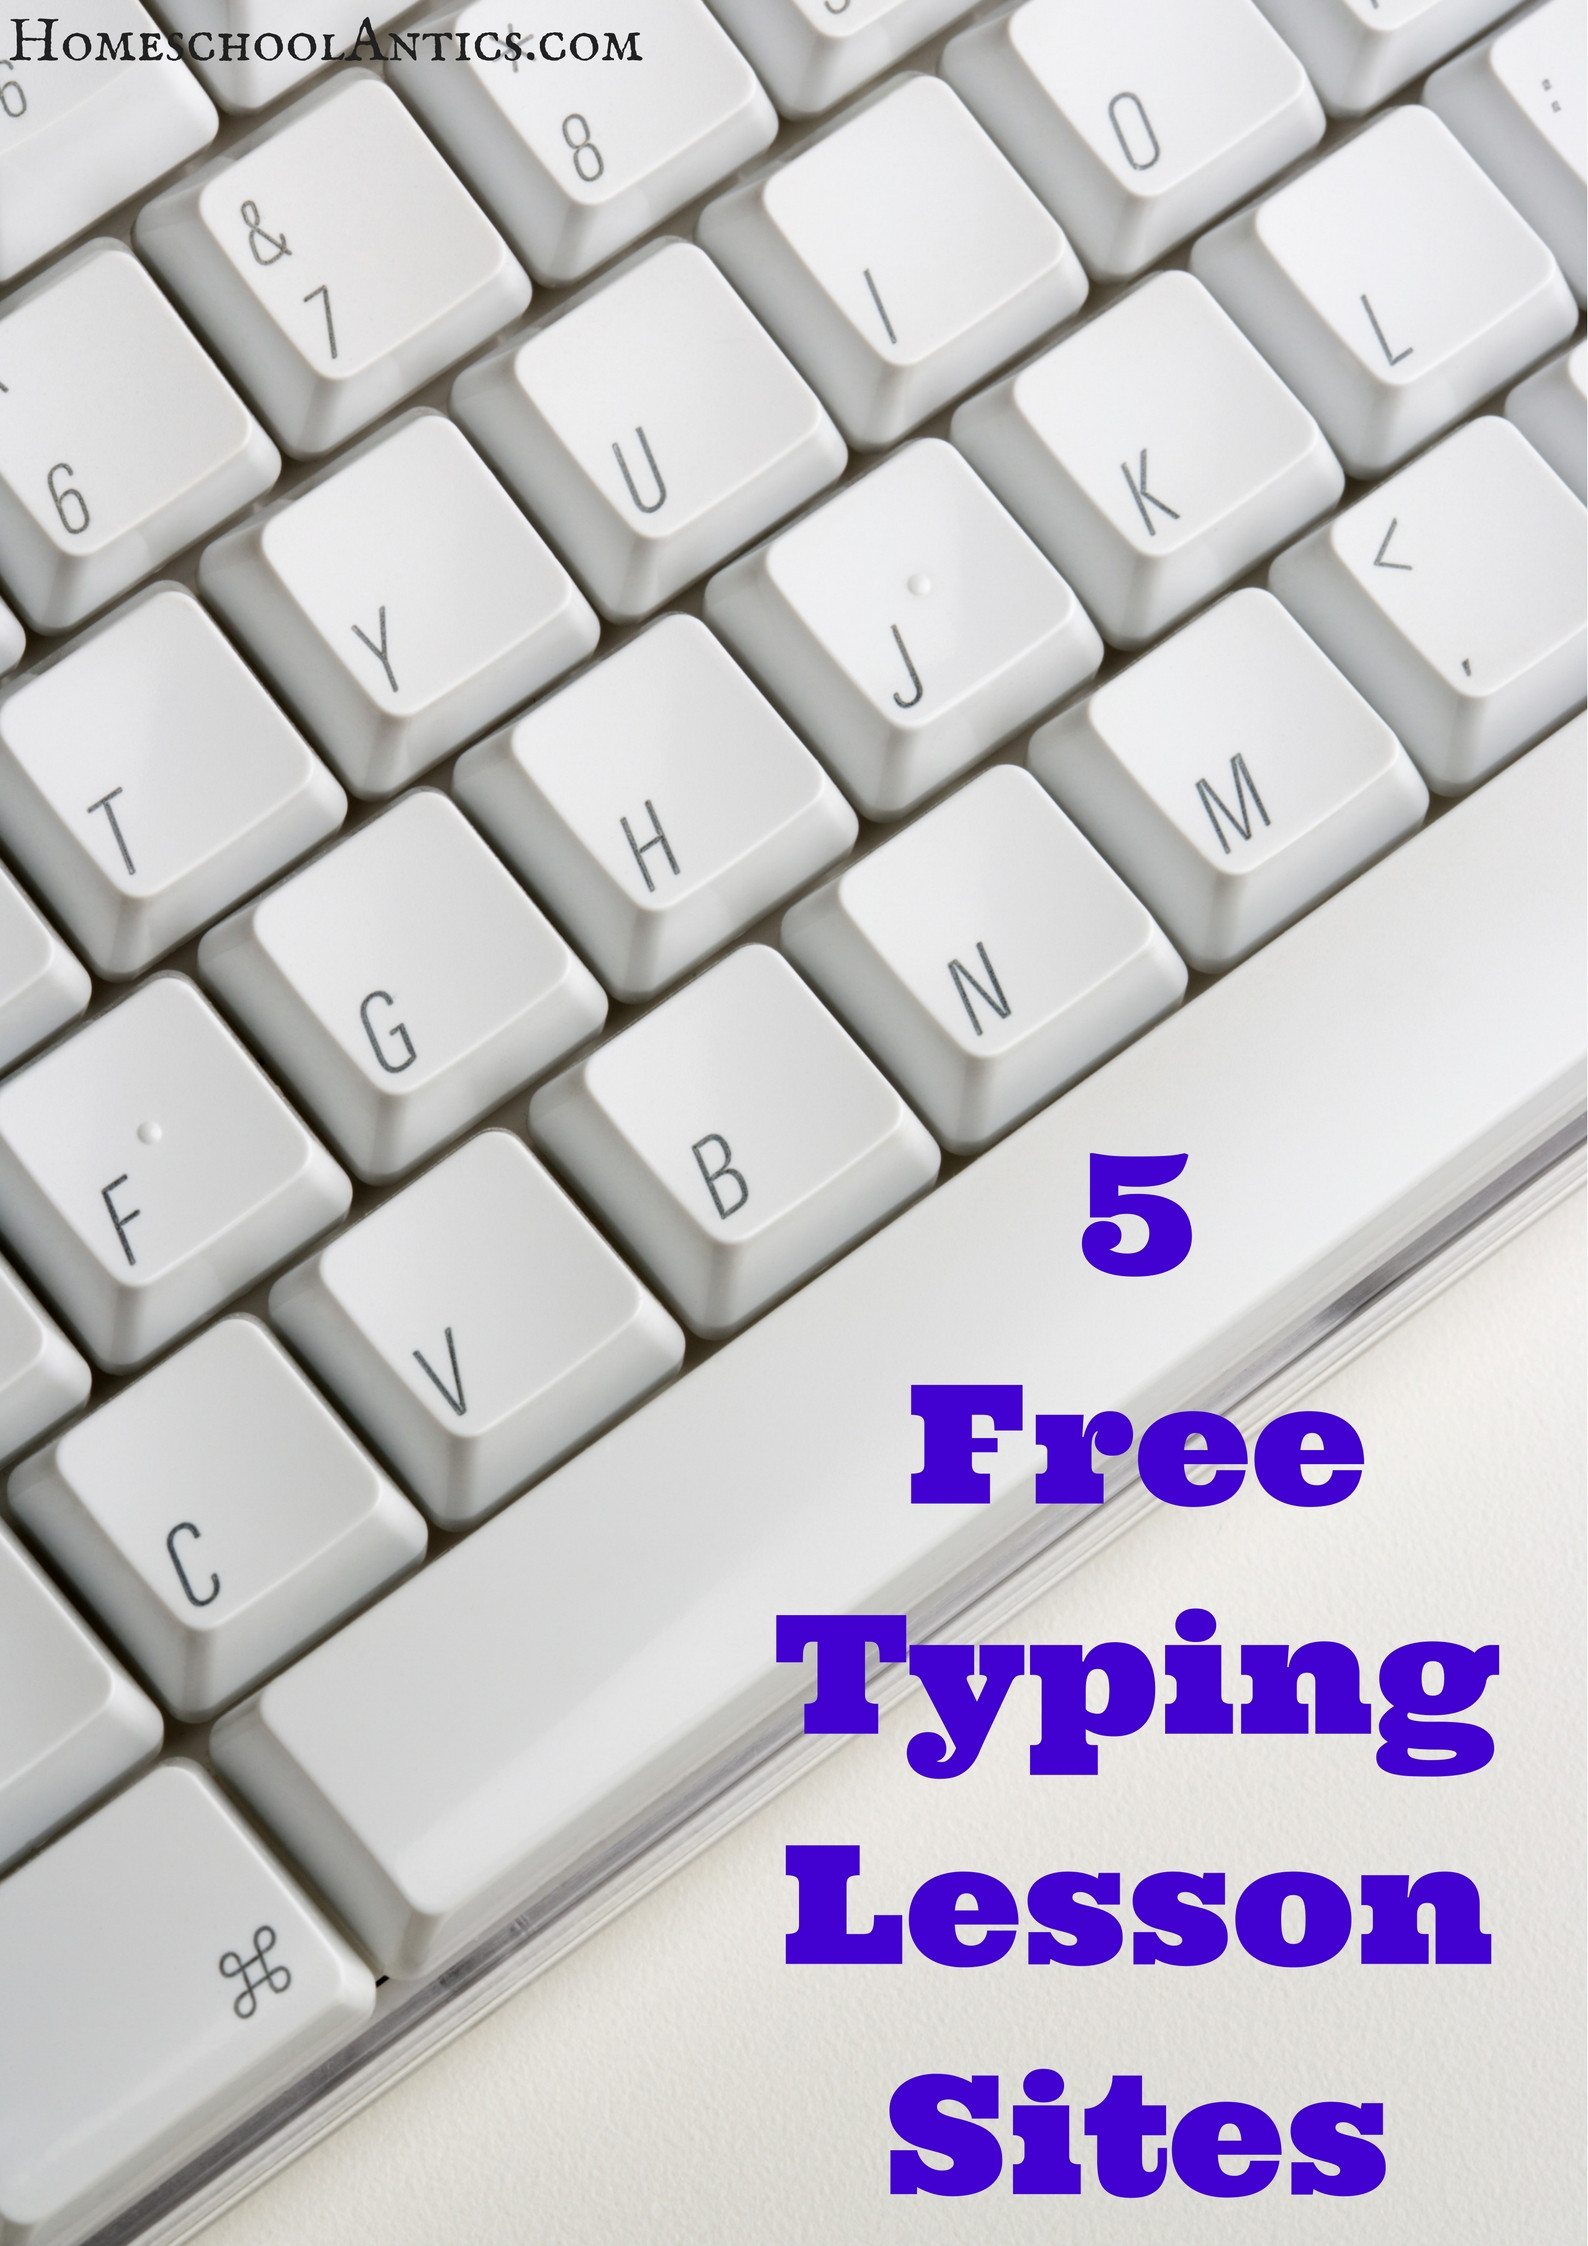 Free Printable Keyboarding Worksheets 5 Free Typing Lesson Sites Homeschool Antics